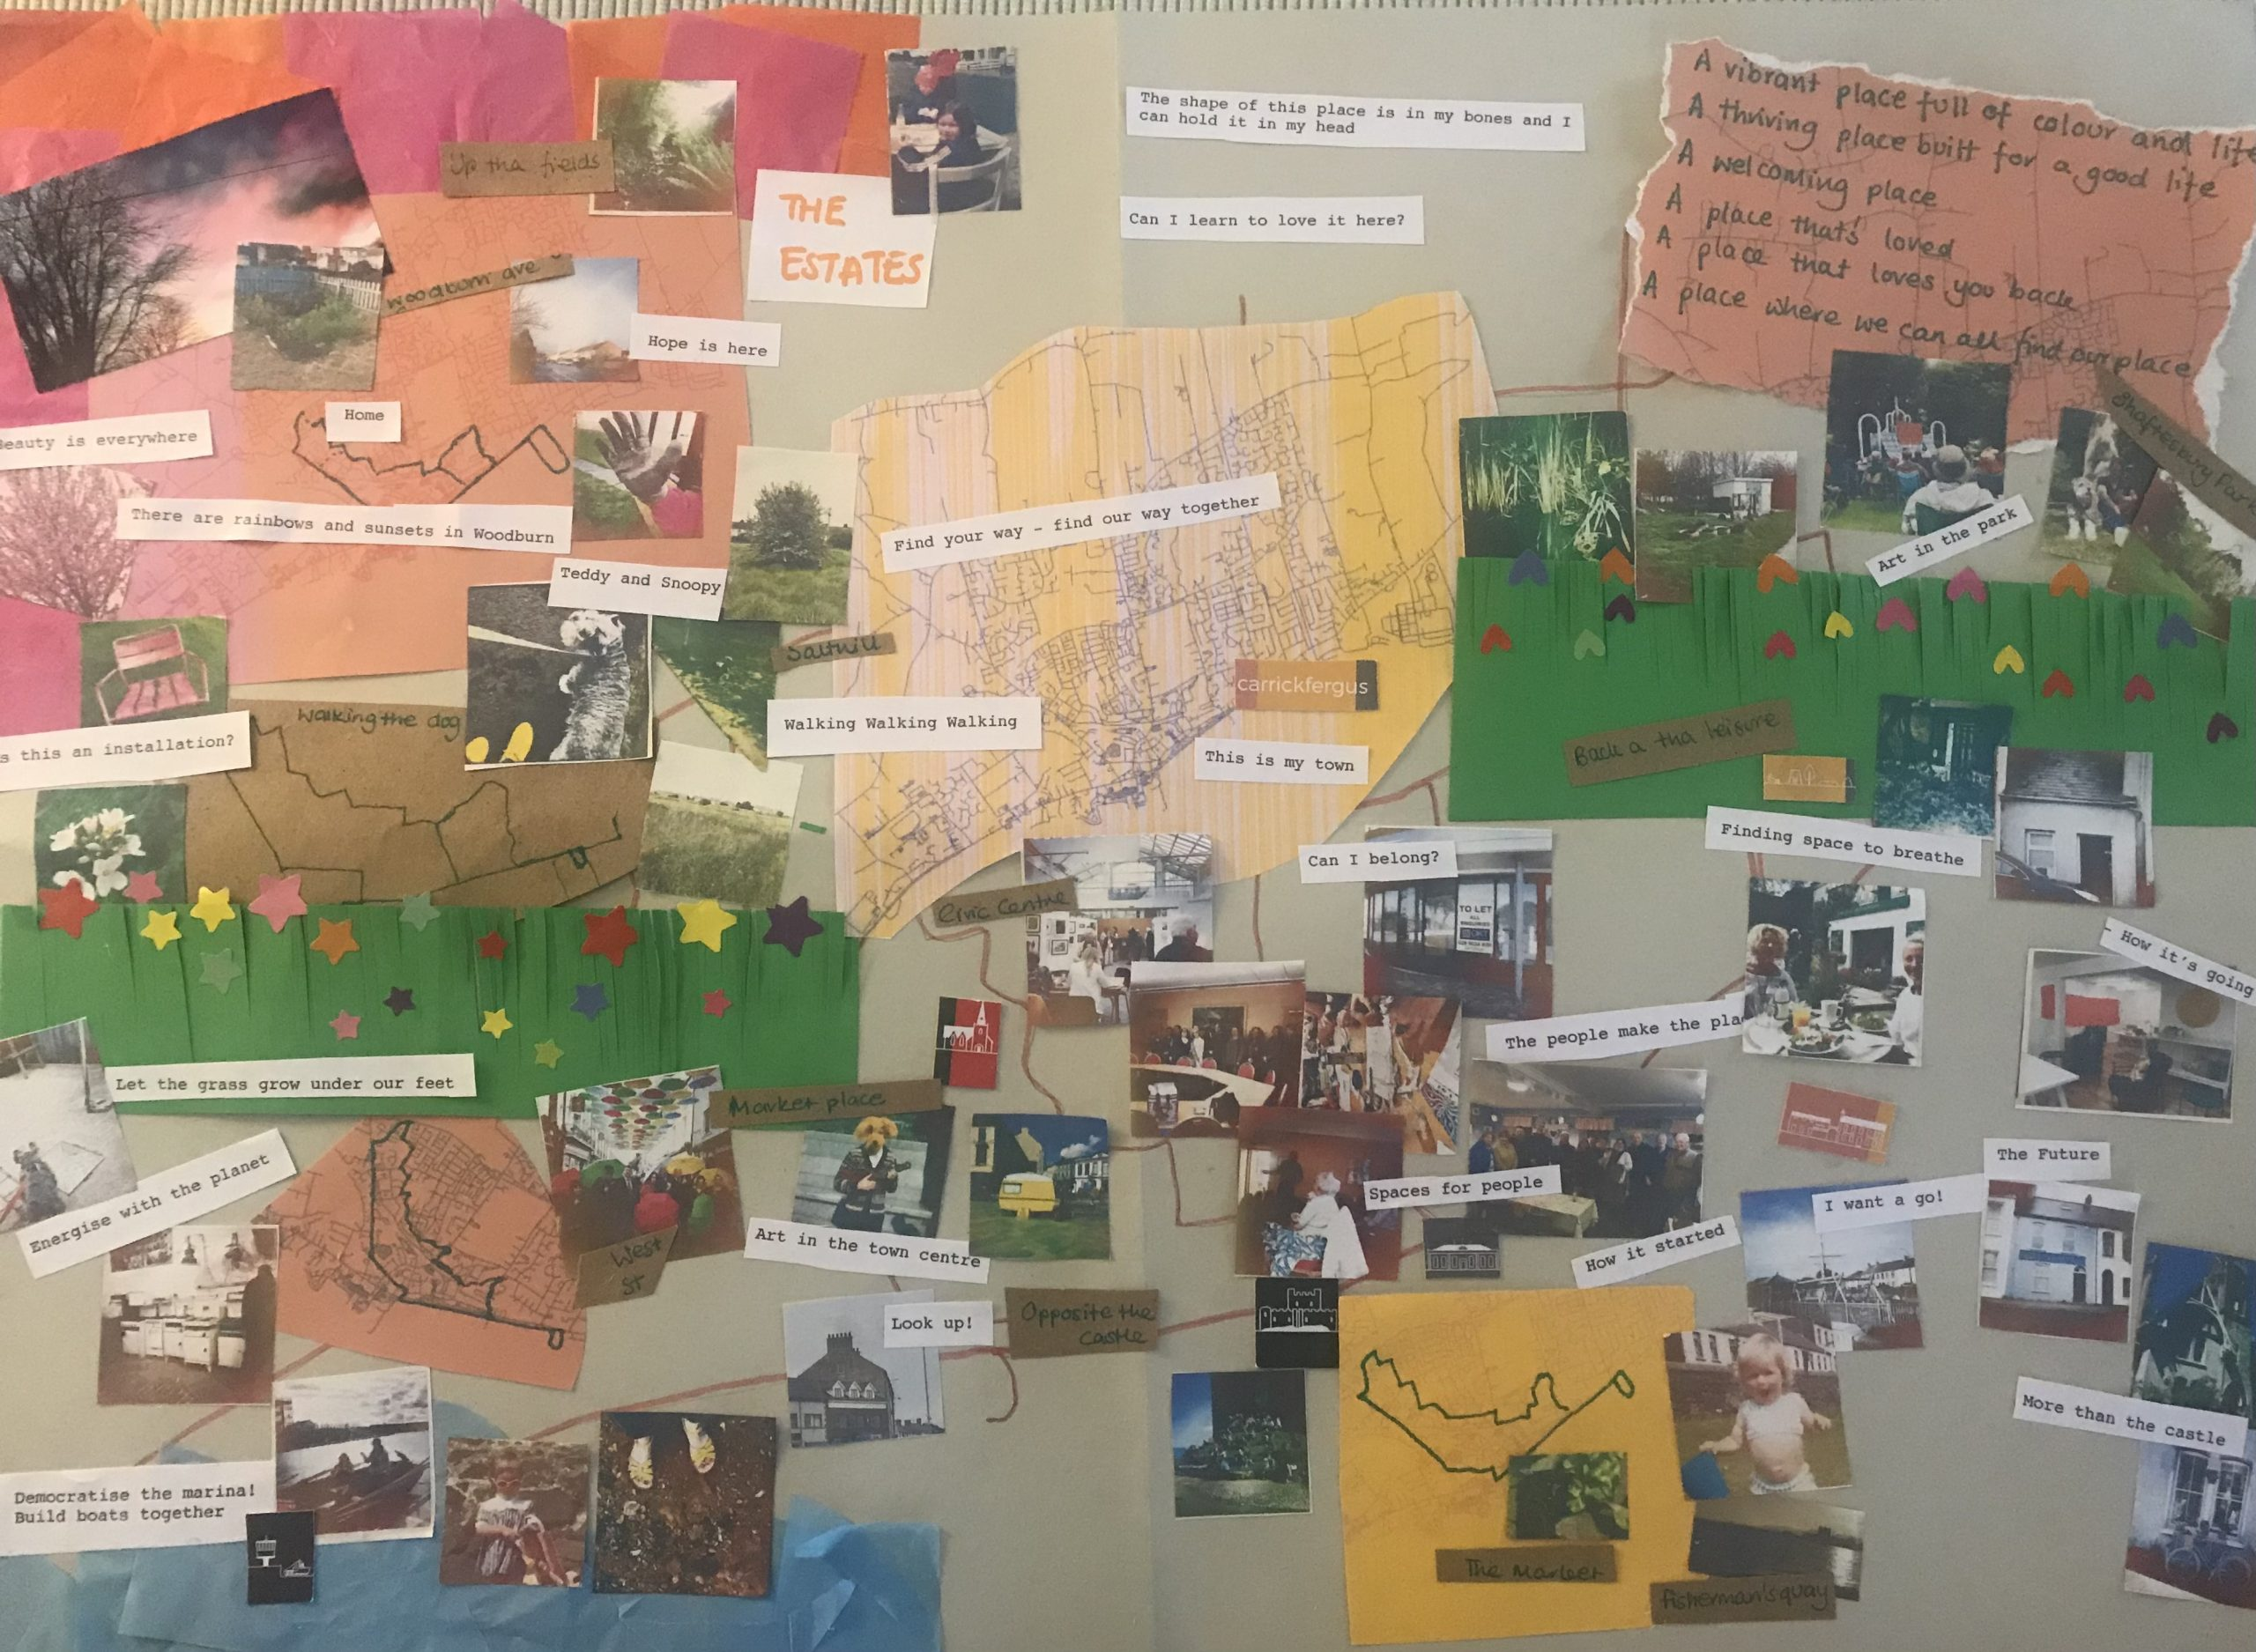 A collage of photographs, maps and typed words about Carrickfergus